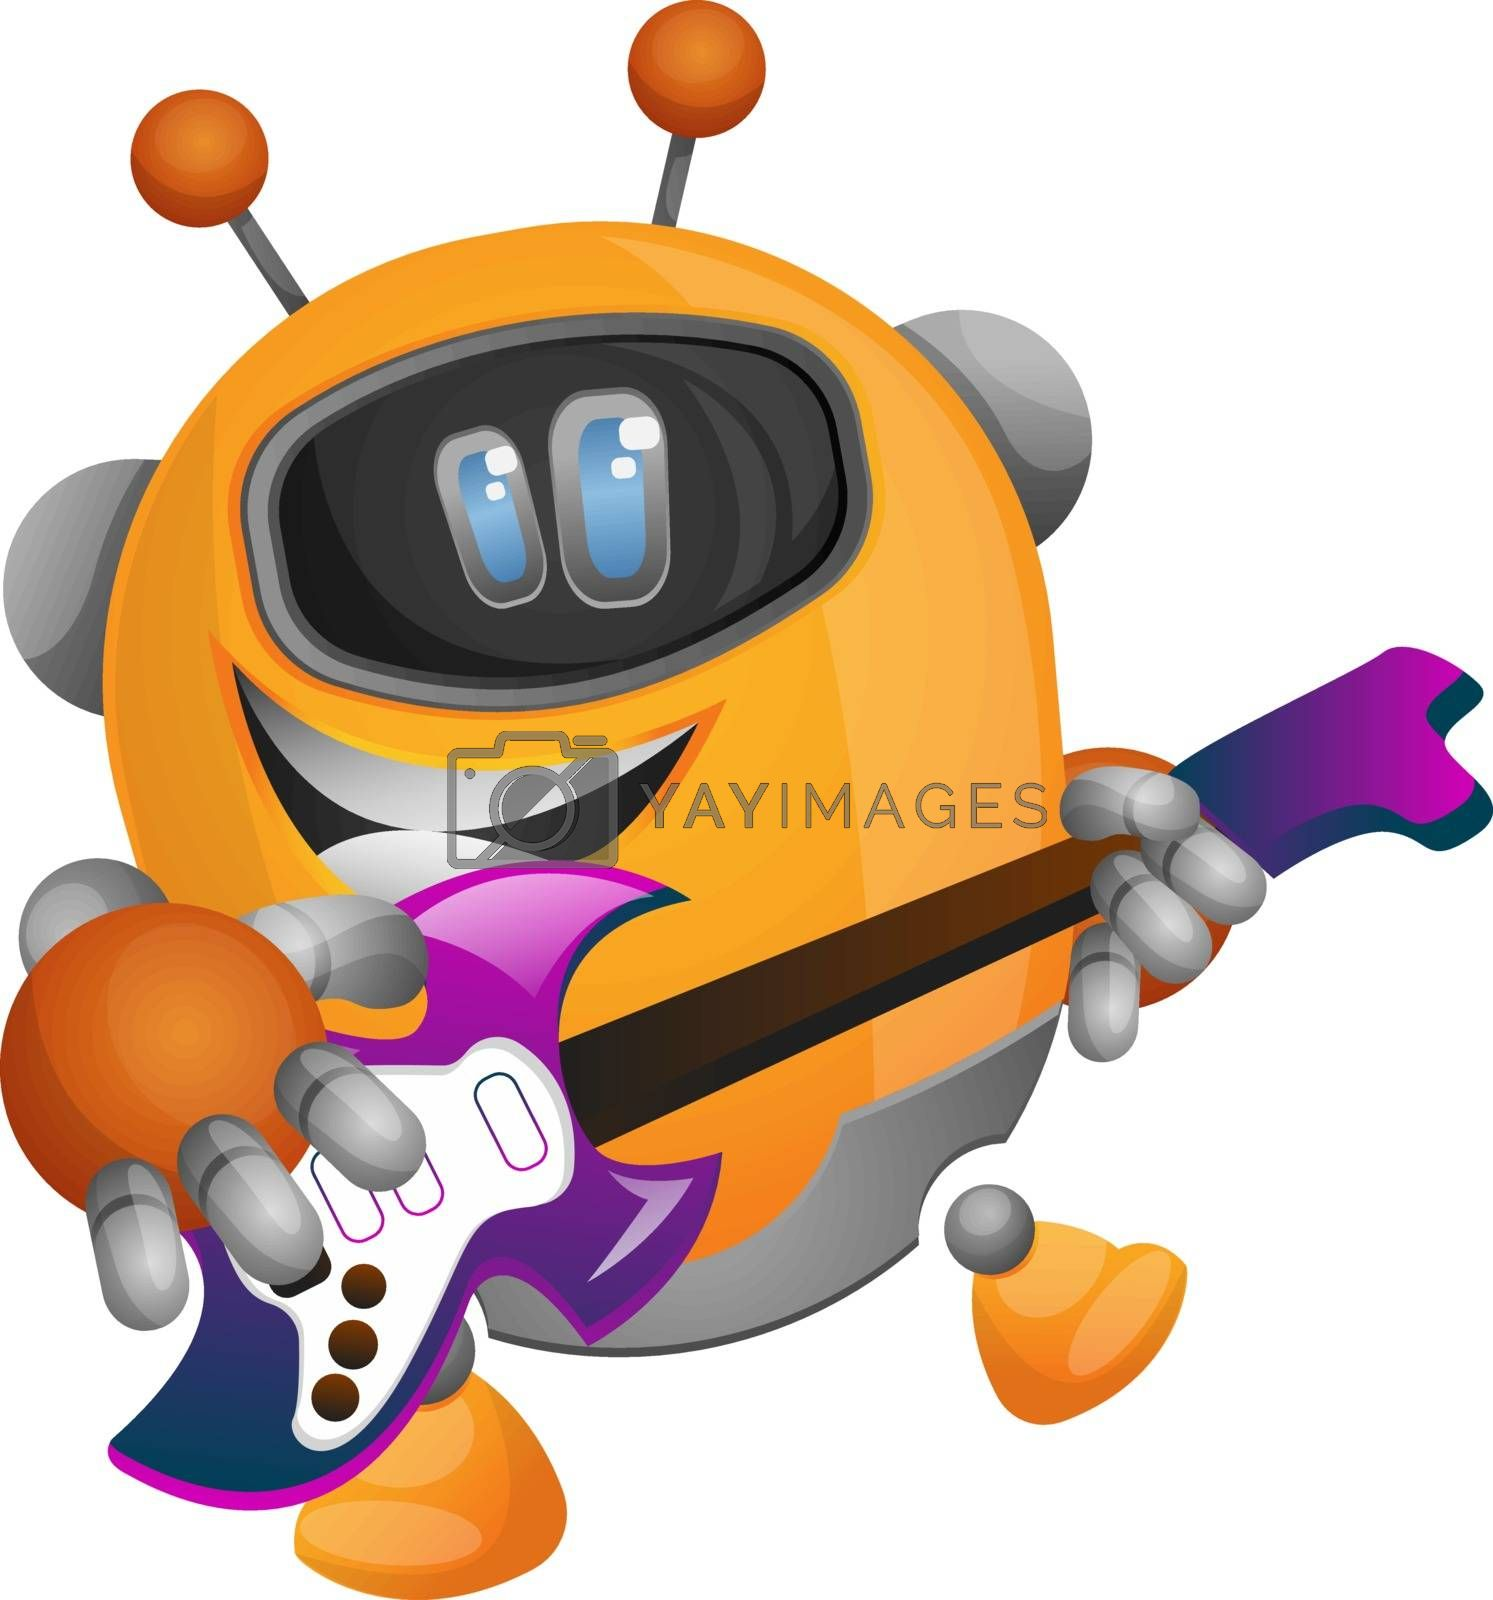 Royalty free image of Robot playing guitar illustration vector on white background by Morphart